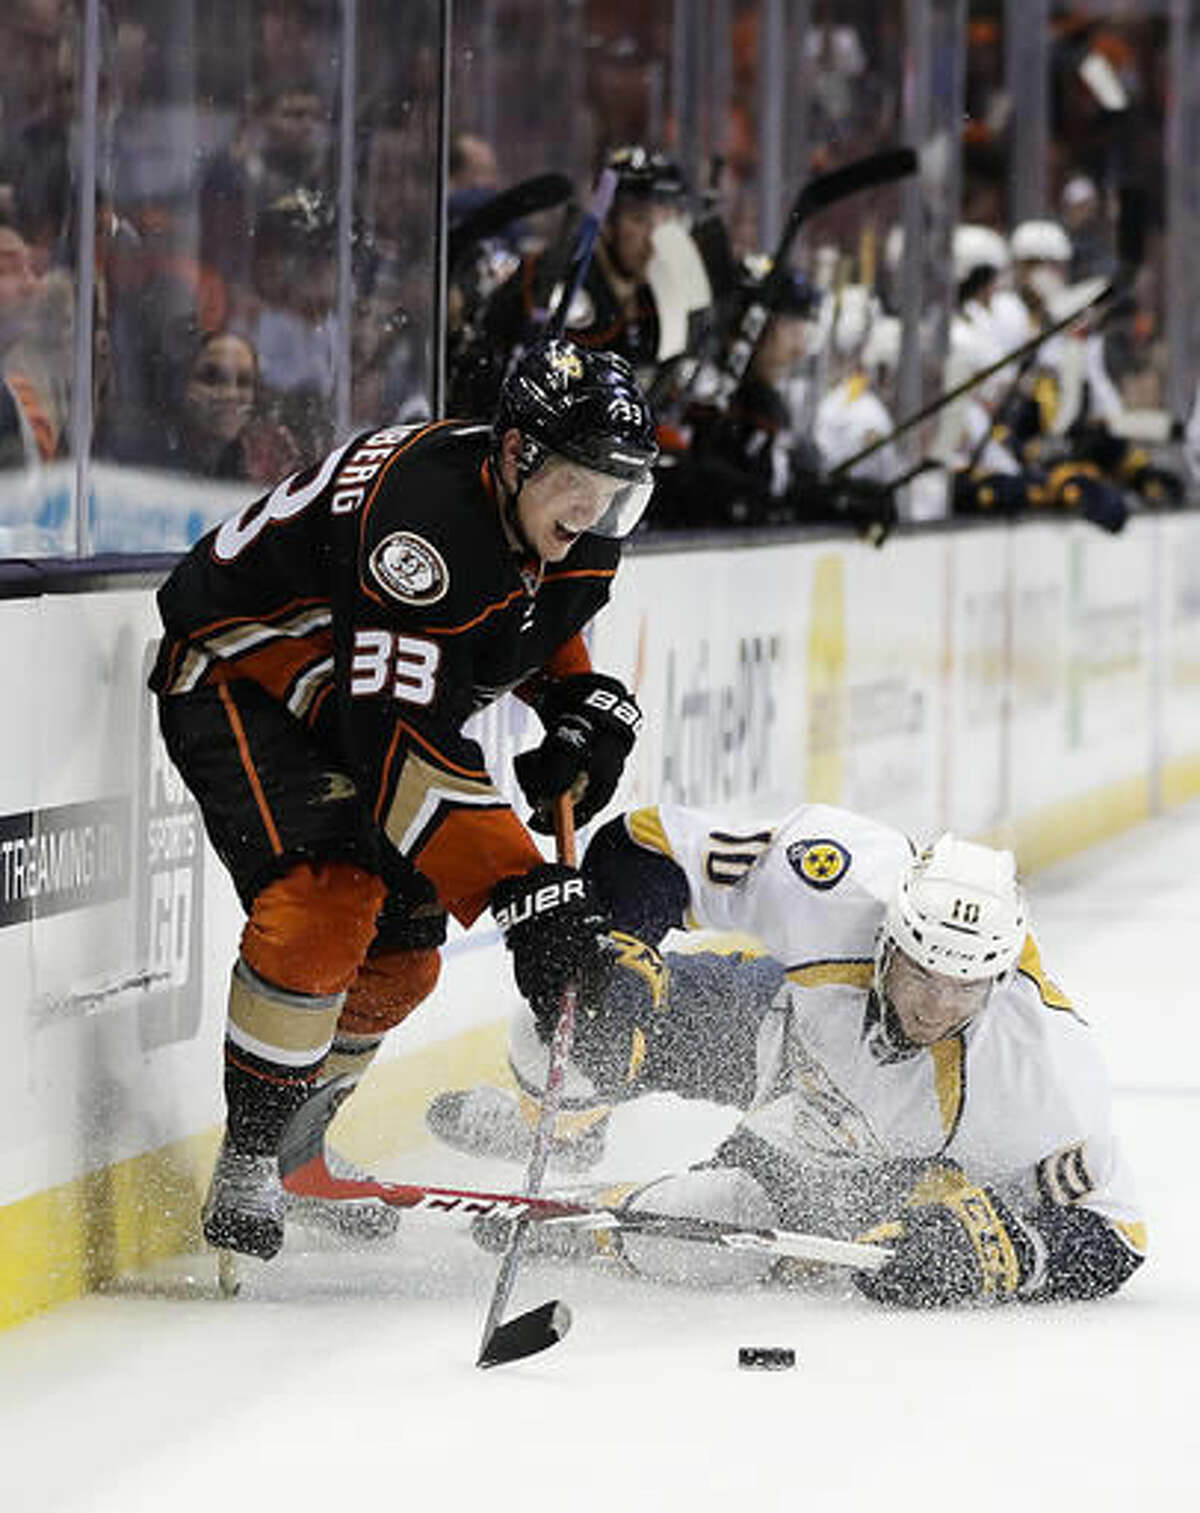 Nashville Predators' Colton Sissons, right, falls to the ice as he defends Anaheim Ducks' Jakob Silfverberg, of Sweden, during the second period of an NHL hockey game Wednesday, Oct. 26, 2016, in Anaheim, Calif. (AP Photo/Jae C. Hong)